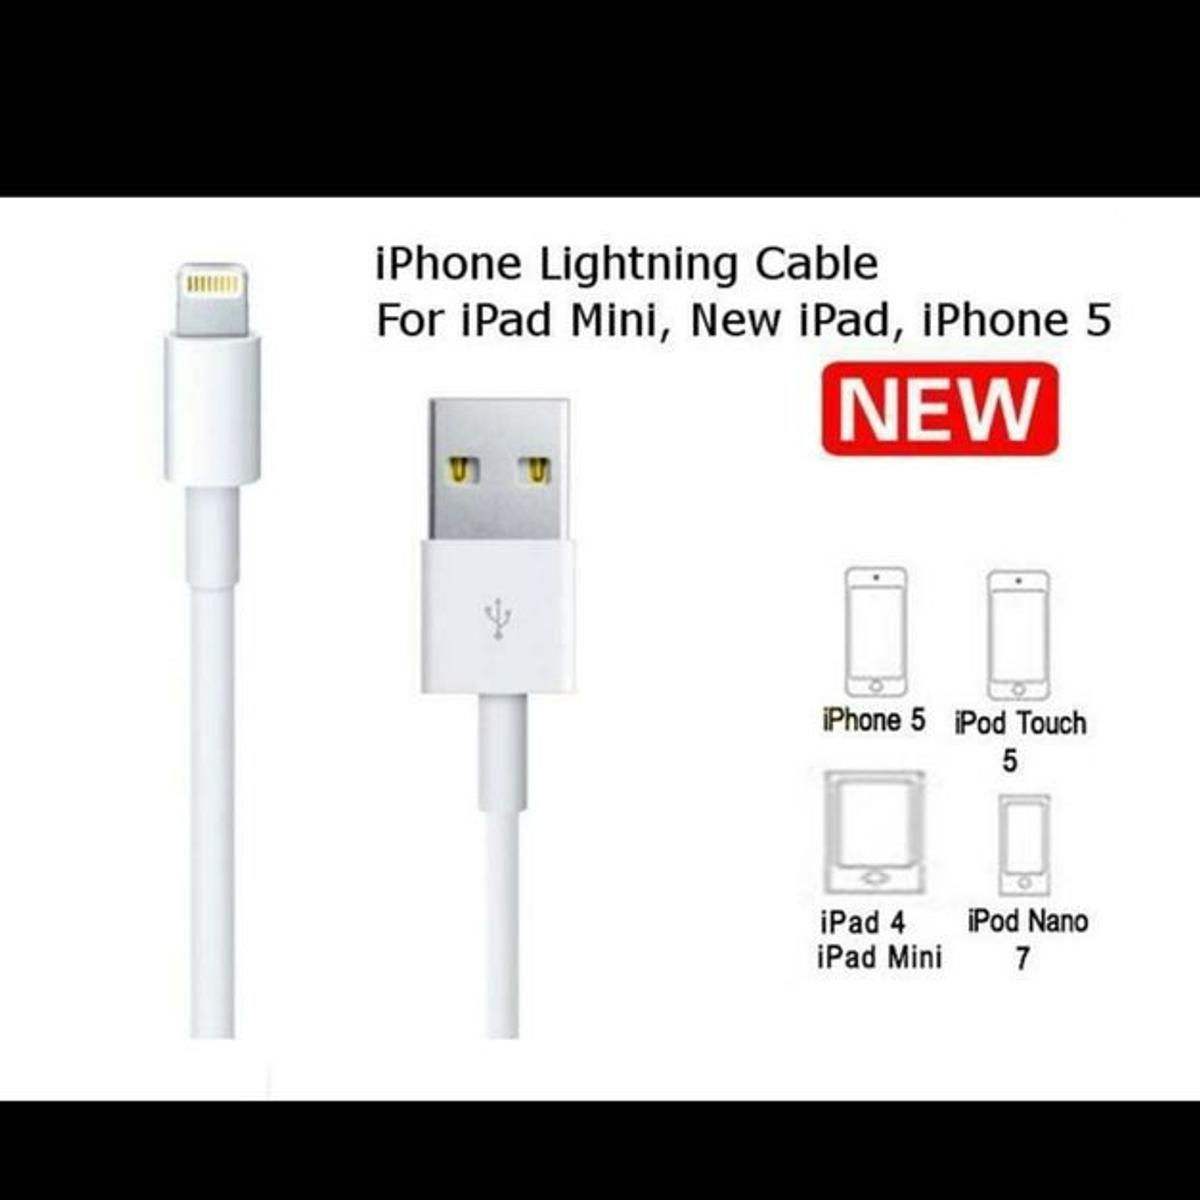 Brand New Pack of Lightning to USB Cable for iPhone, iPad and iPod.Use the Lightning to USB Cable to charge and sync your iPhone, iPad, or iPod with Lightning connector to your Mac or Windows PC.This USB 2.0 cable connects your iPhone, iPad, or iPod with Lightning connector to your computer's USB port for syncing and charging or to the USB Power Adapter for convenient charging from a wall outlet.Supports ALL IOS Systems including all IOS version.Compatible with all latest iPhones.